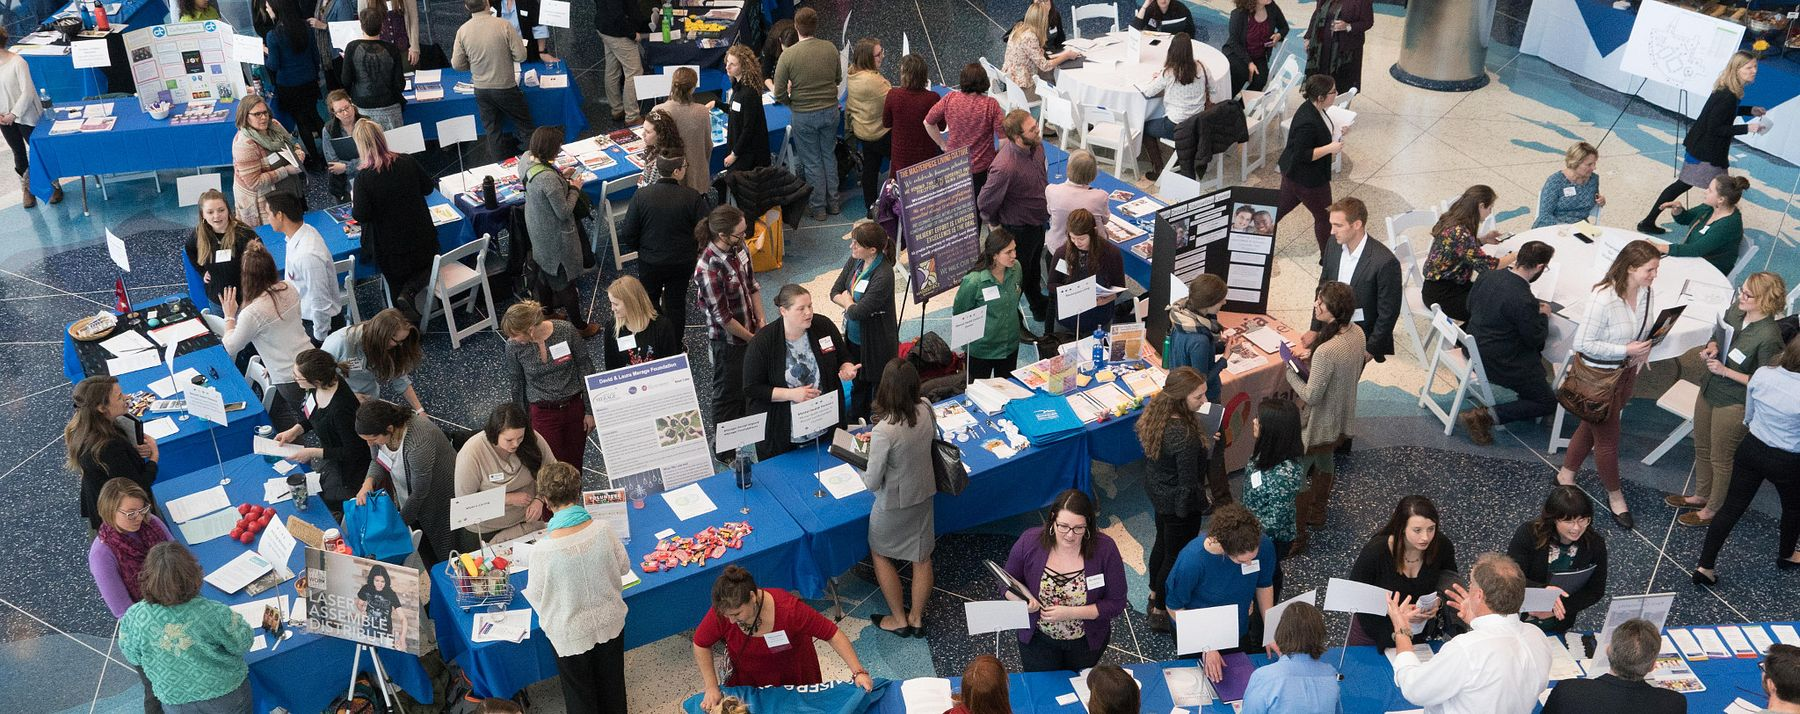 internship fair from above